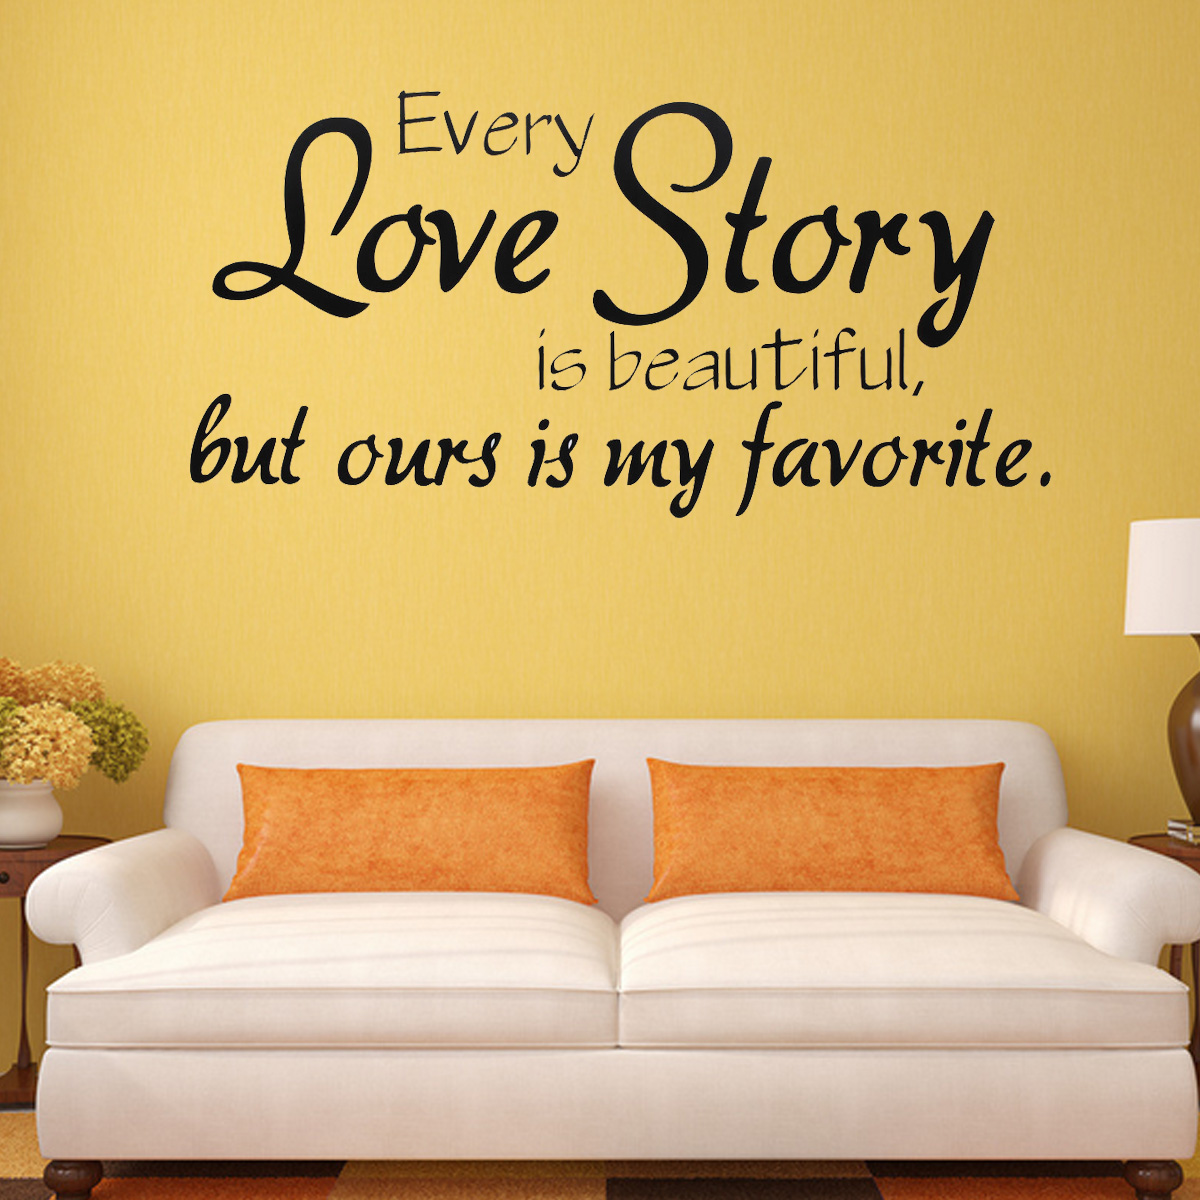 New every love story is beautiful decor removable vinyl wall decal quote sticker ebay - Latest beautiful wall decoration ...